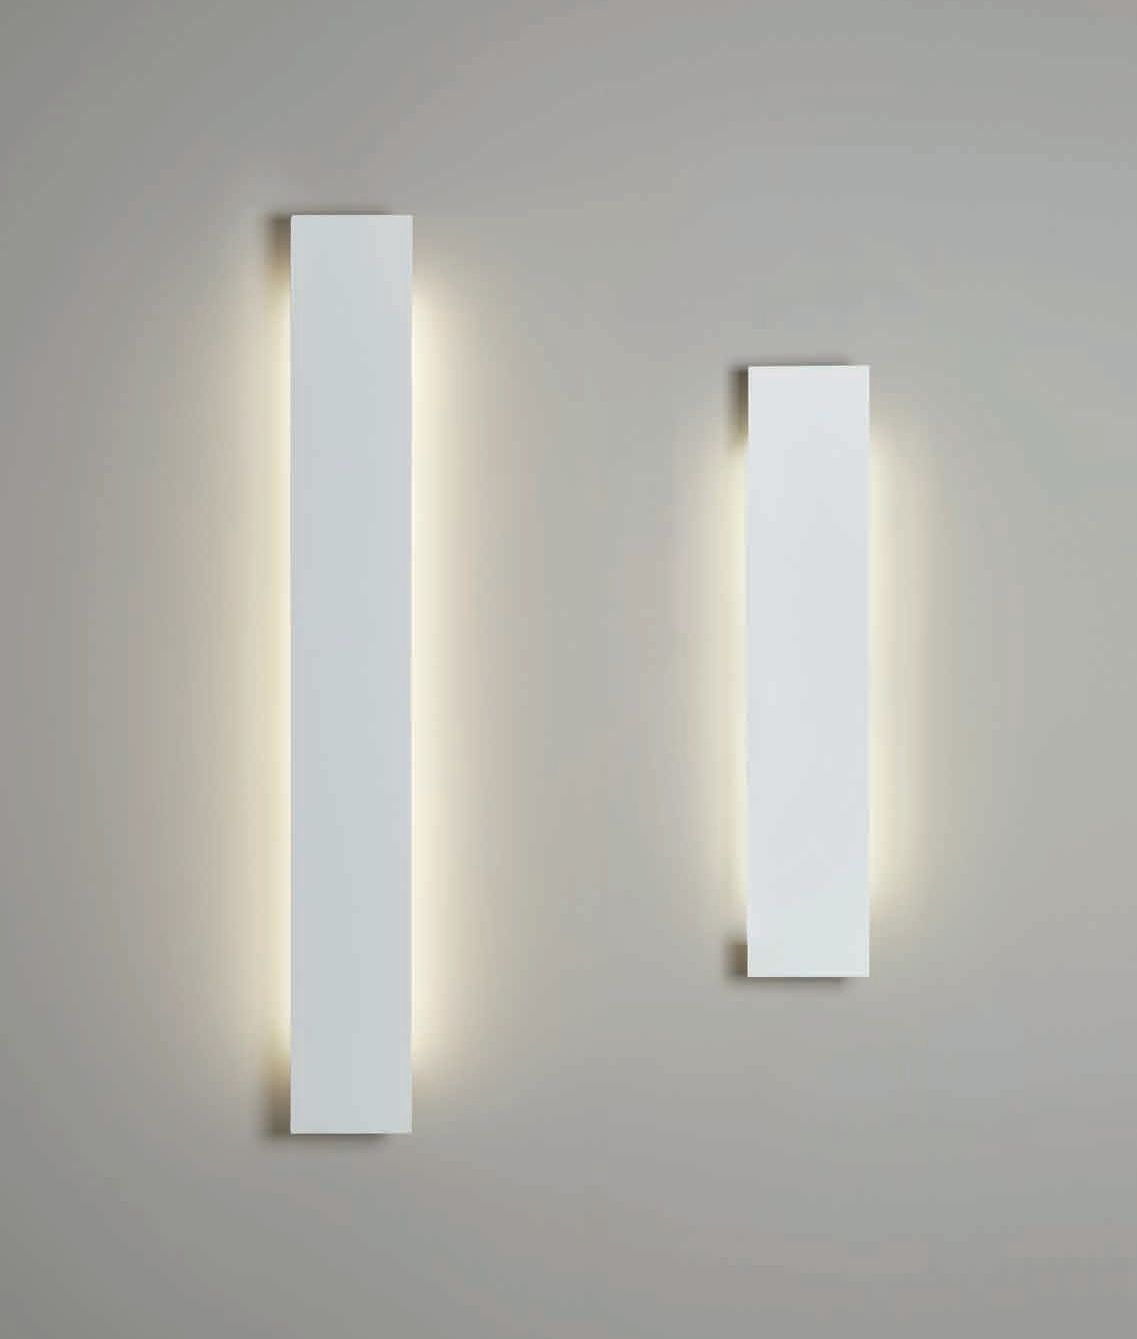 Pin By Xu Jun On Plaster Neutral Style Lighting Plaster Wall Lights Recessed Wall Lights Wall Lights